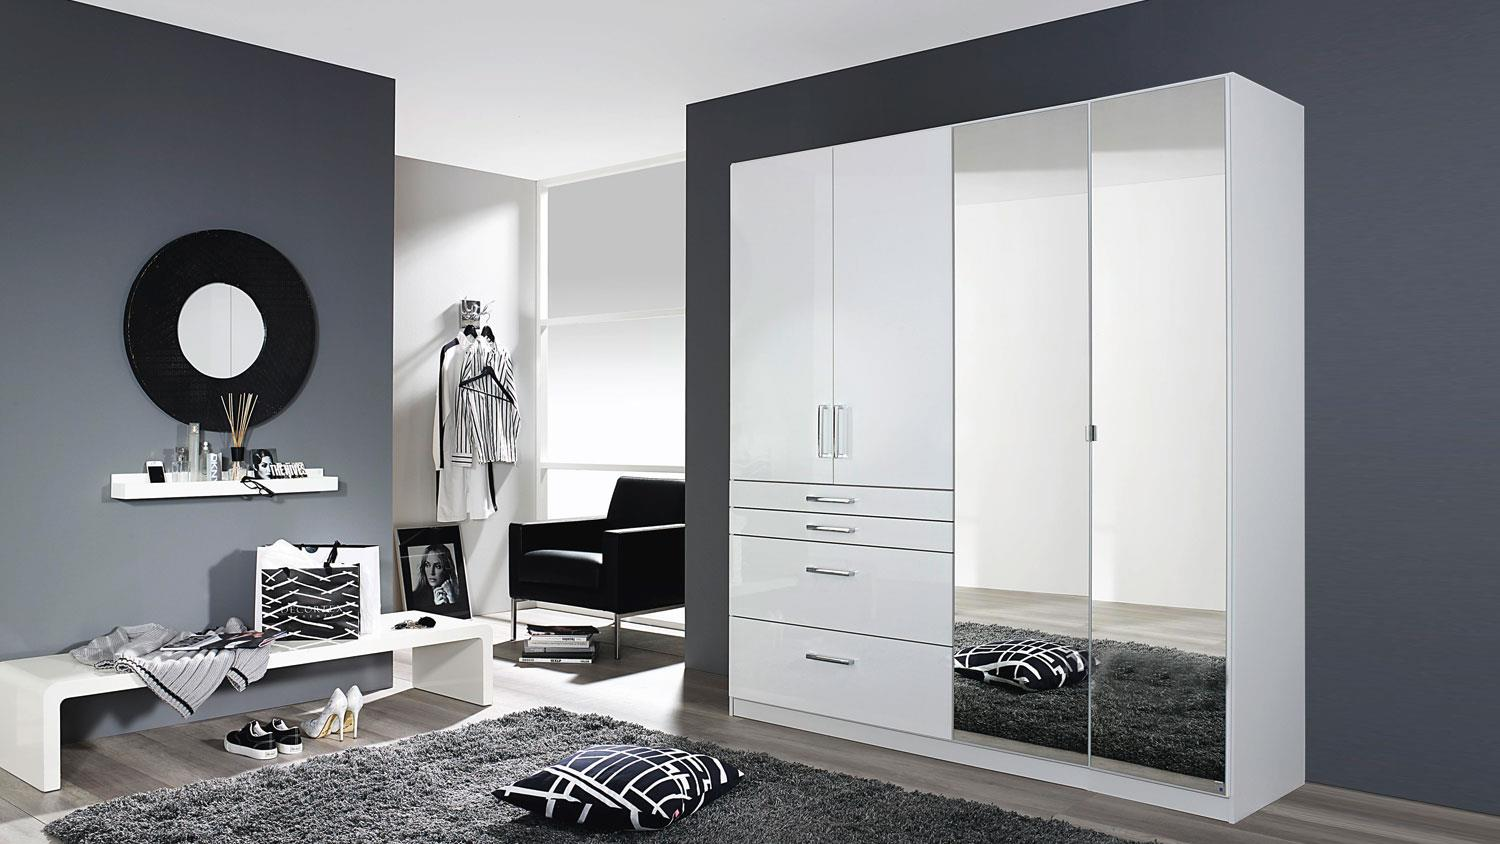 kleiderschrank homburg mit spiegel wei hochglanz b 181 cm. Black Bedroom Furniture Sets. Home Design Ideas